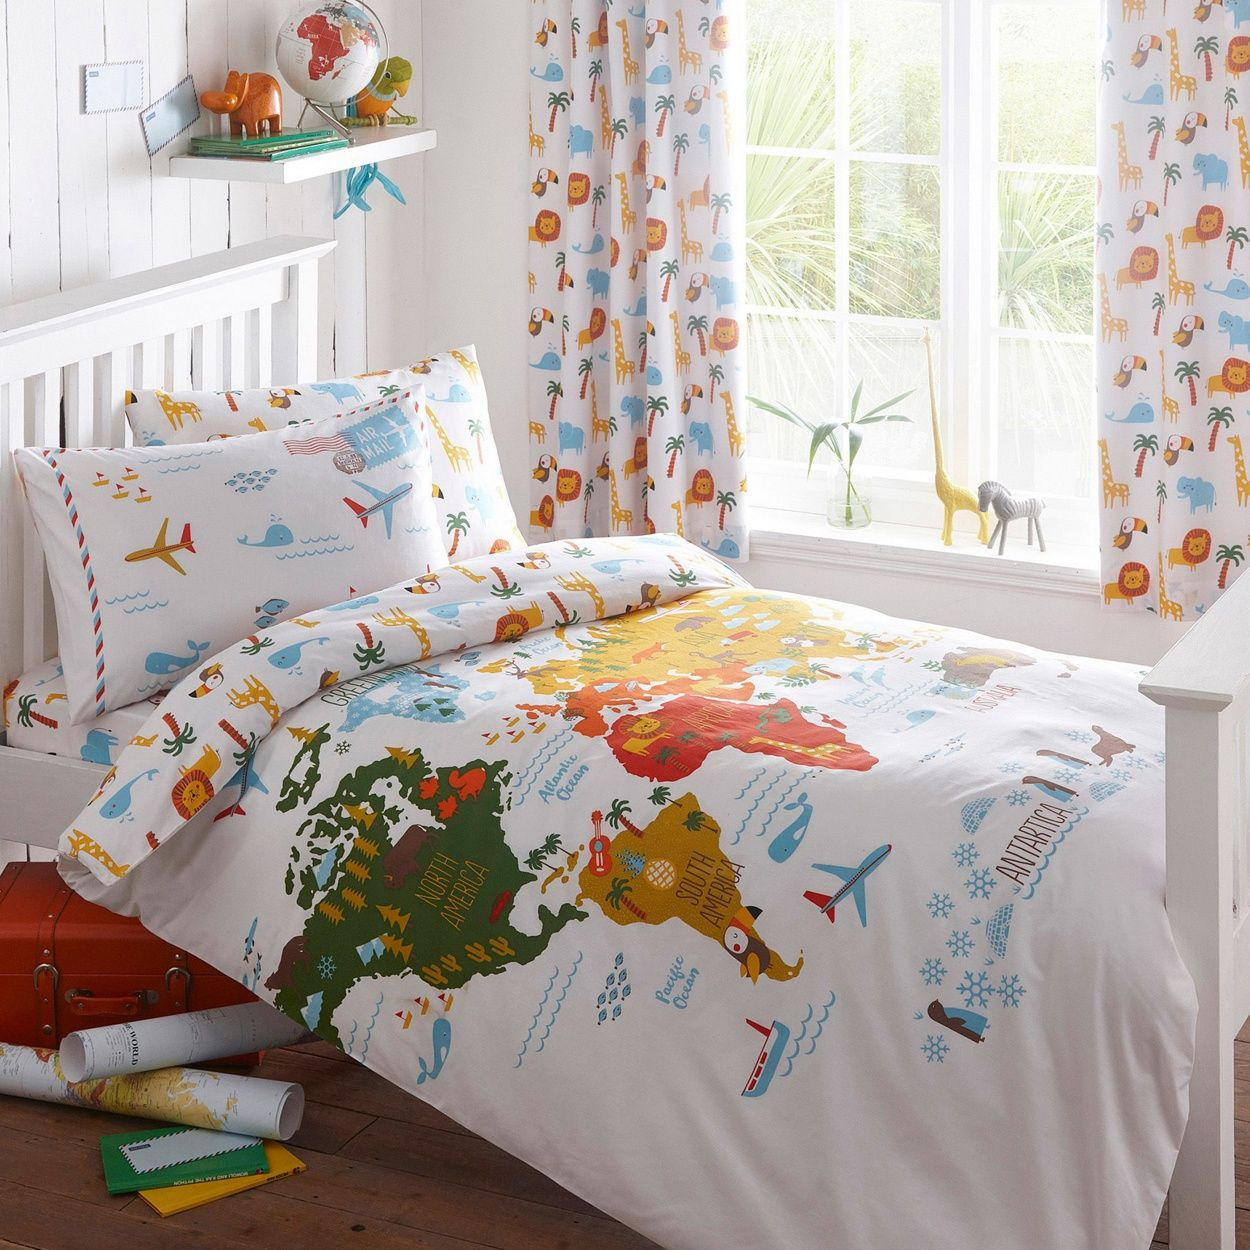 From our exclusive Ben de Lisi range, this duvet set is perfect for aspiring explorers. Made from a super-soft cotton blend, it has a print depicting the world adorned with fun features including palm trees and pineapples.